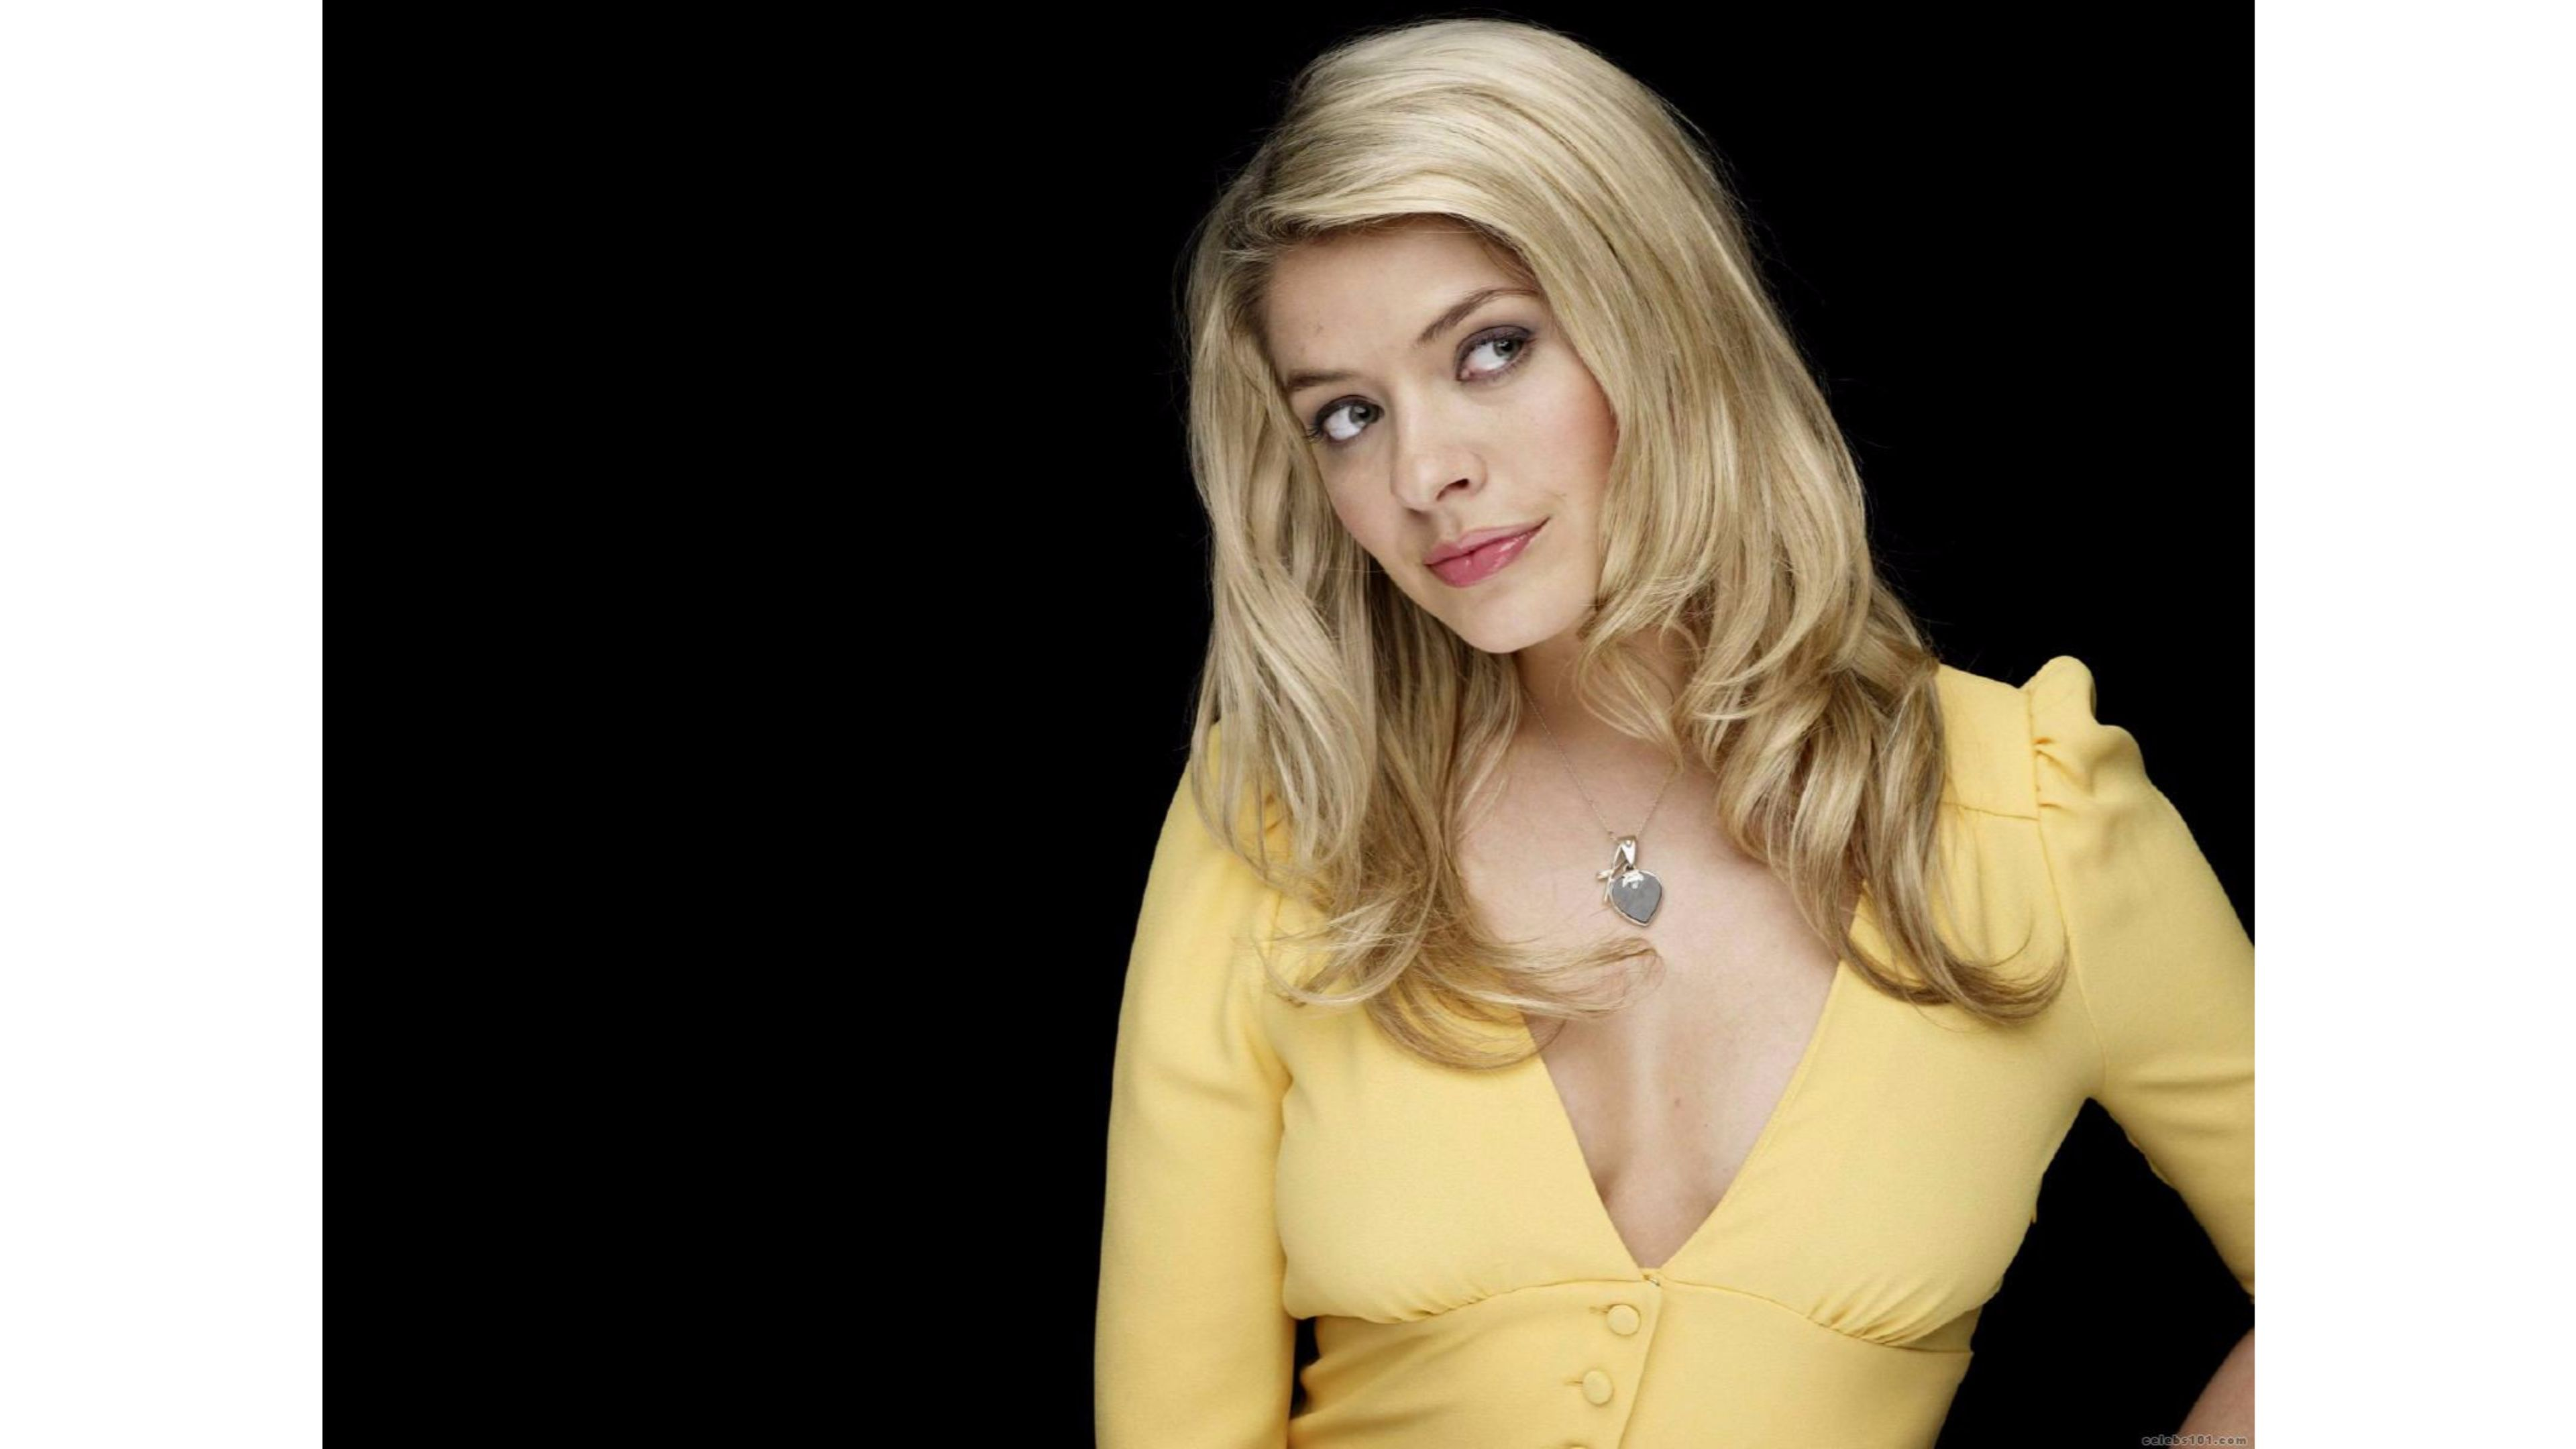 3840x2160 - Holly Willoughby Wallpapers 6